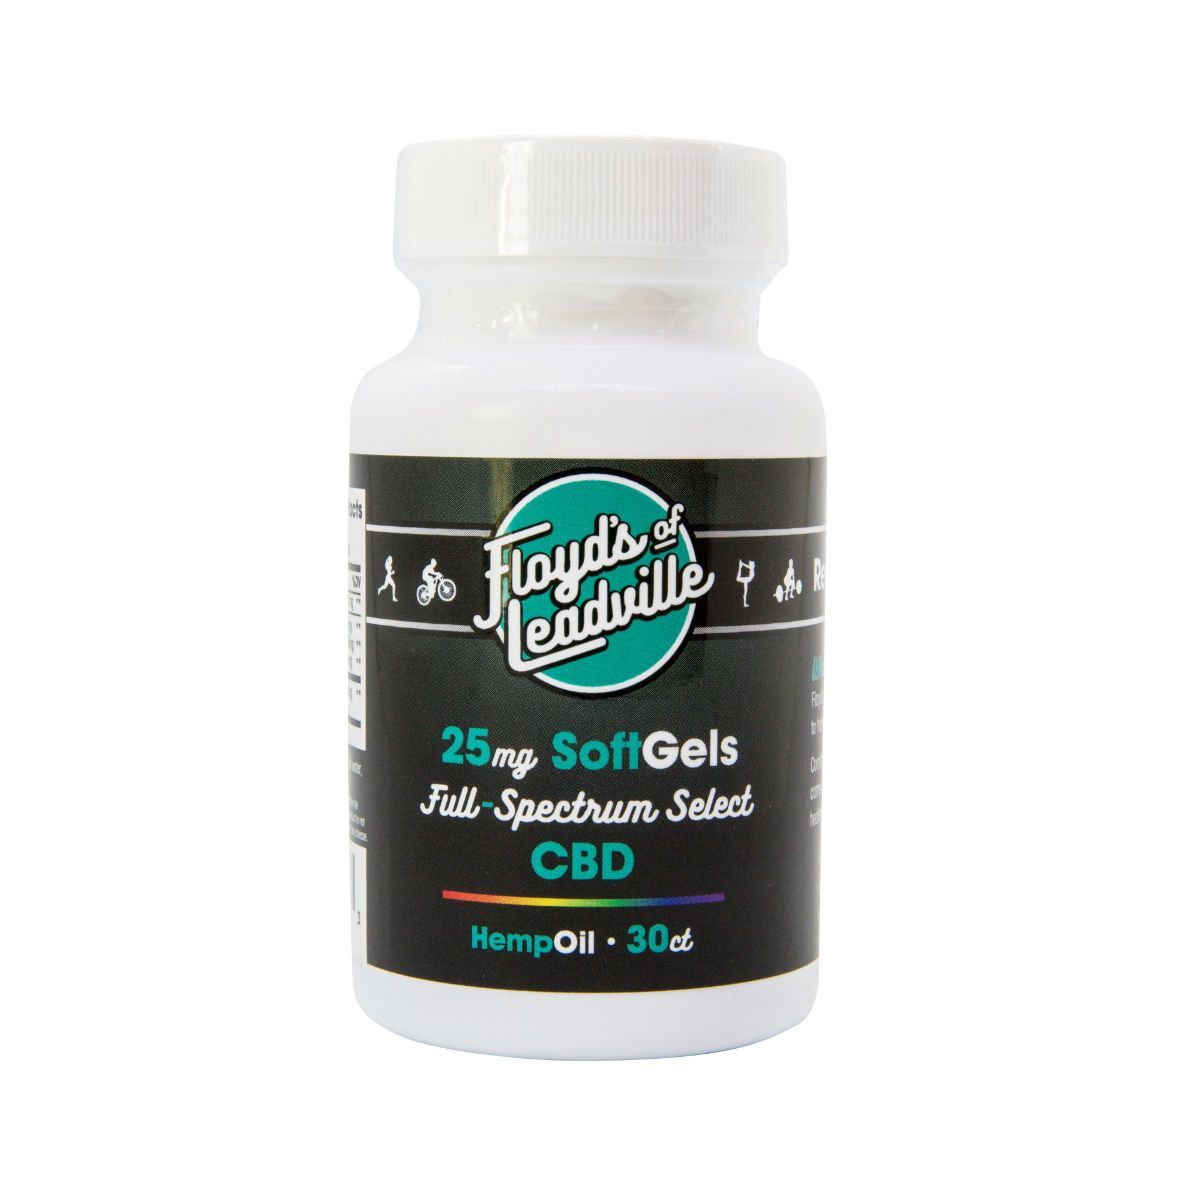 Floyd's of Leadville CBD Full Spectrum Softgel, 25mg/30ct